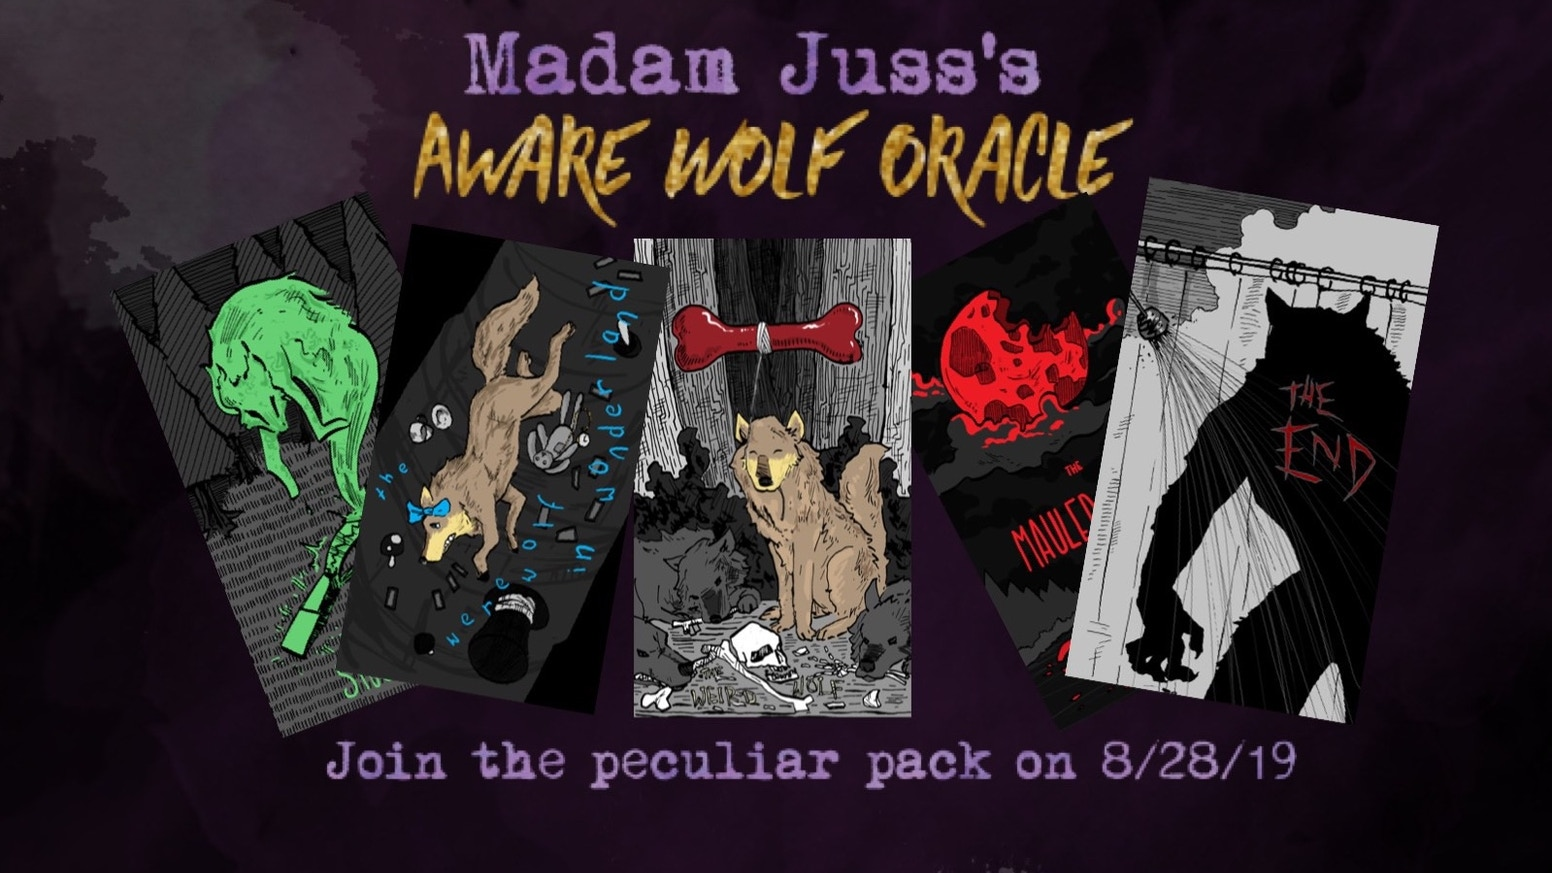 Shift happens! Madam Juss's Aware Wolf Oracle is here to add some werewolfery into your life and divination practice, calm or chaotic!